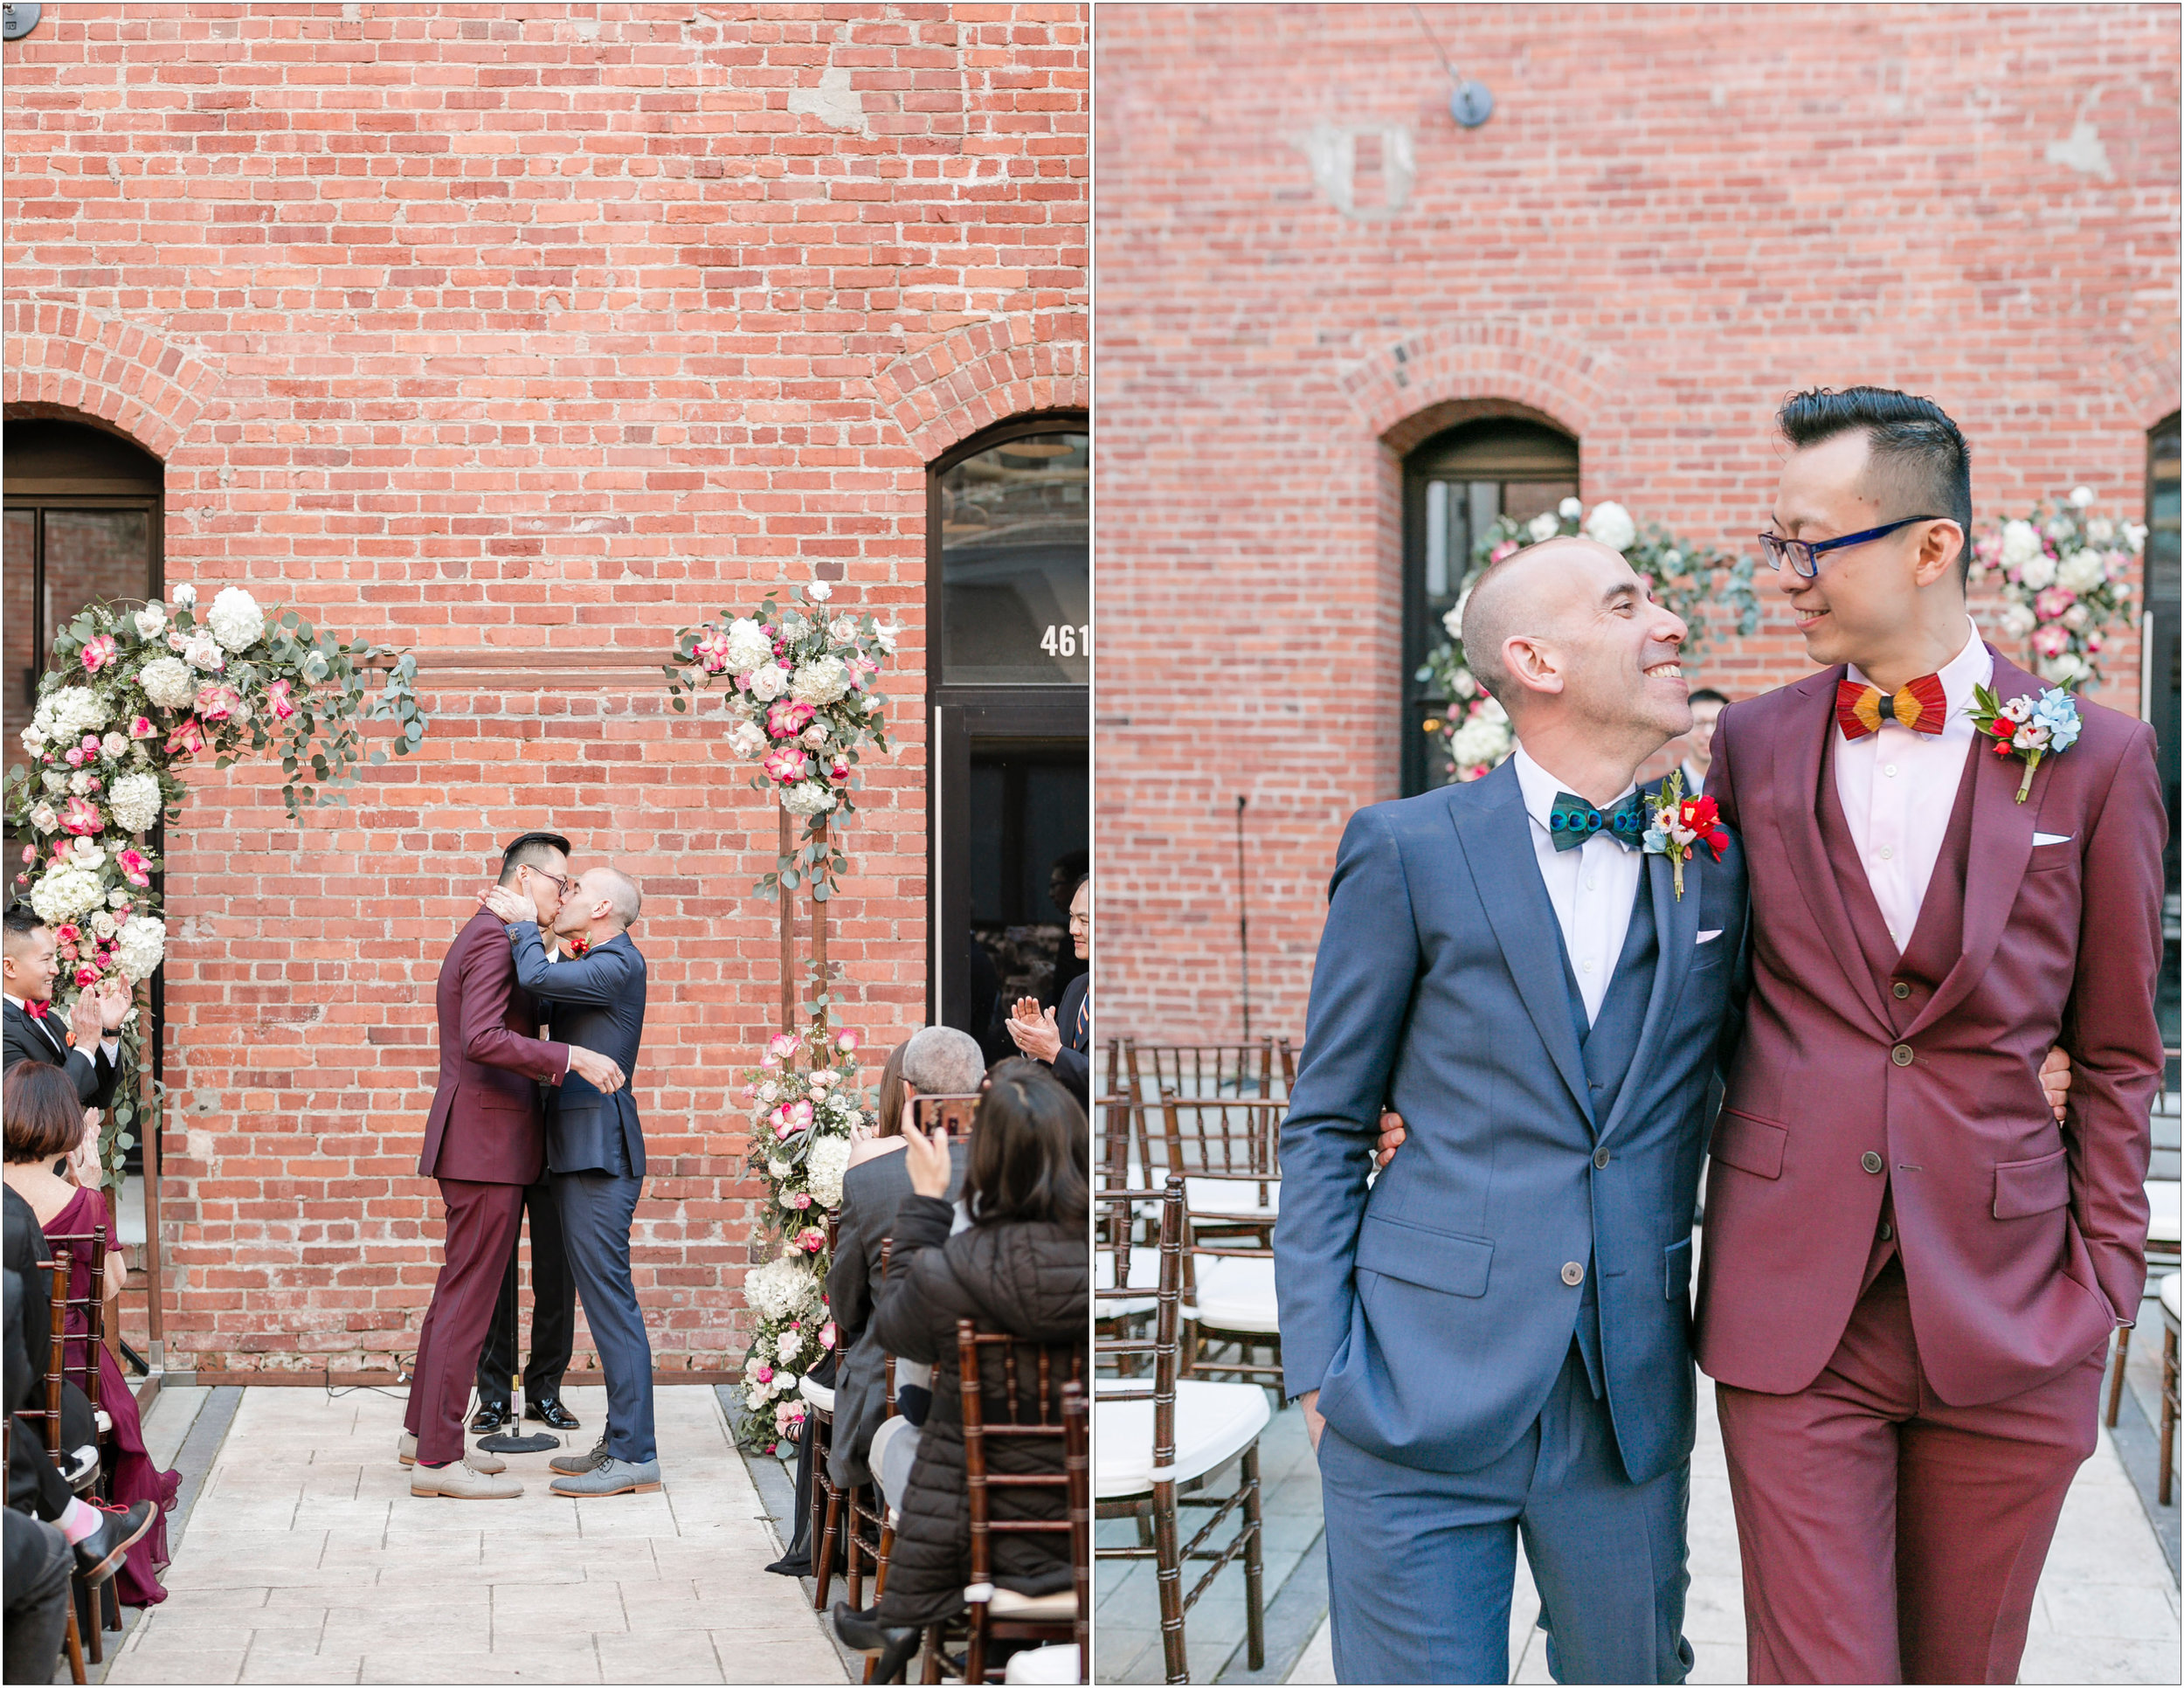 Argnaut Hotel Wedding - Michelle Chang Photography